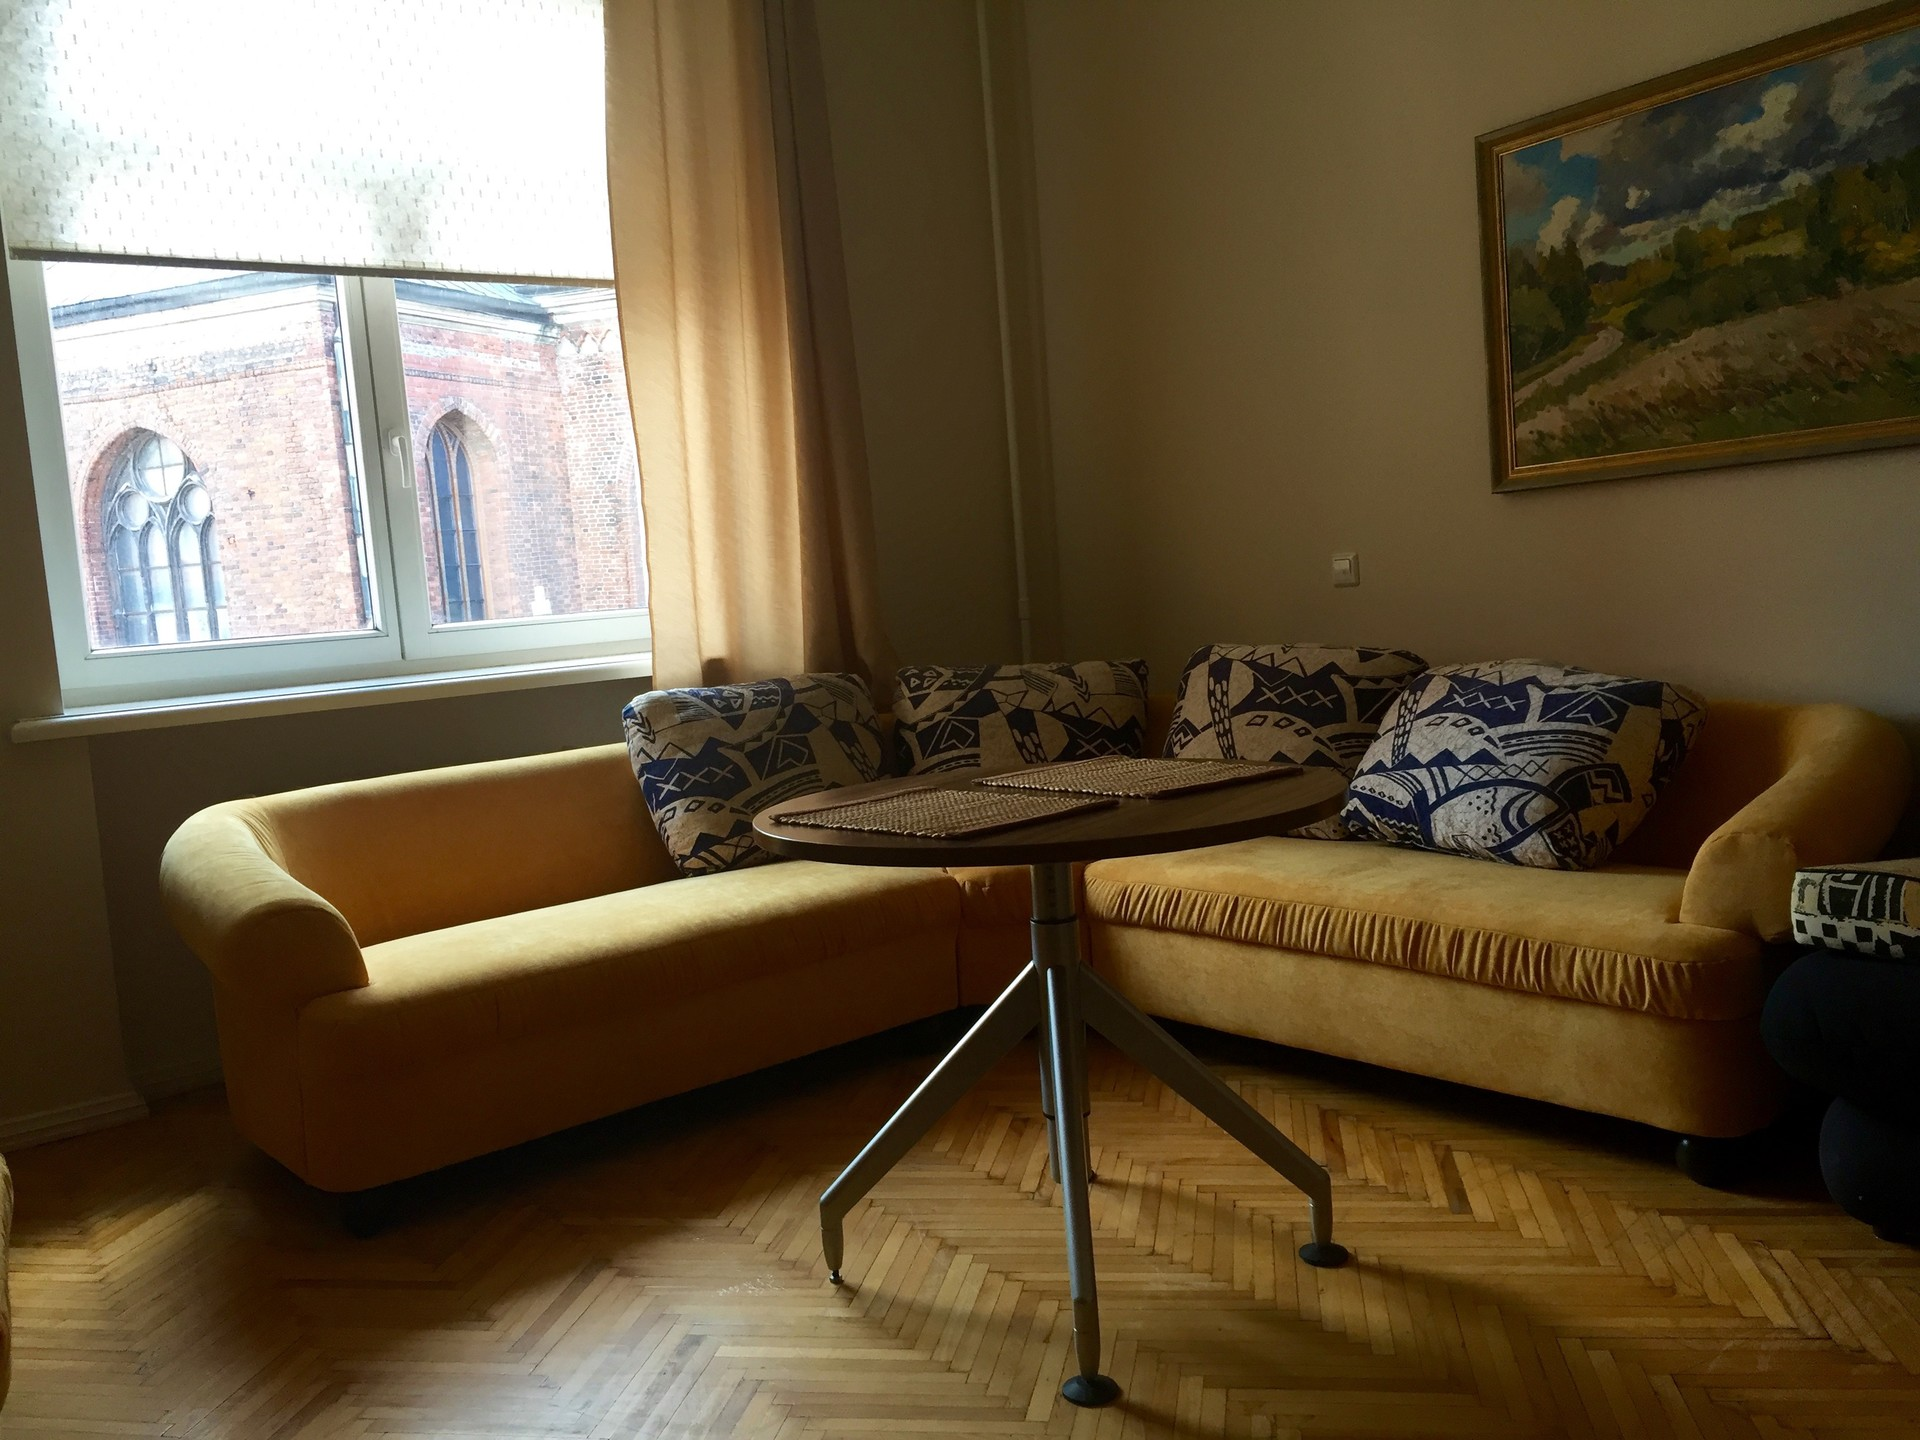 3-room-apartment-in-riga-old-town-529d15a7bf8313217bac2a2045e3f9aa